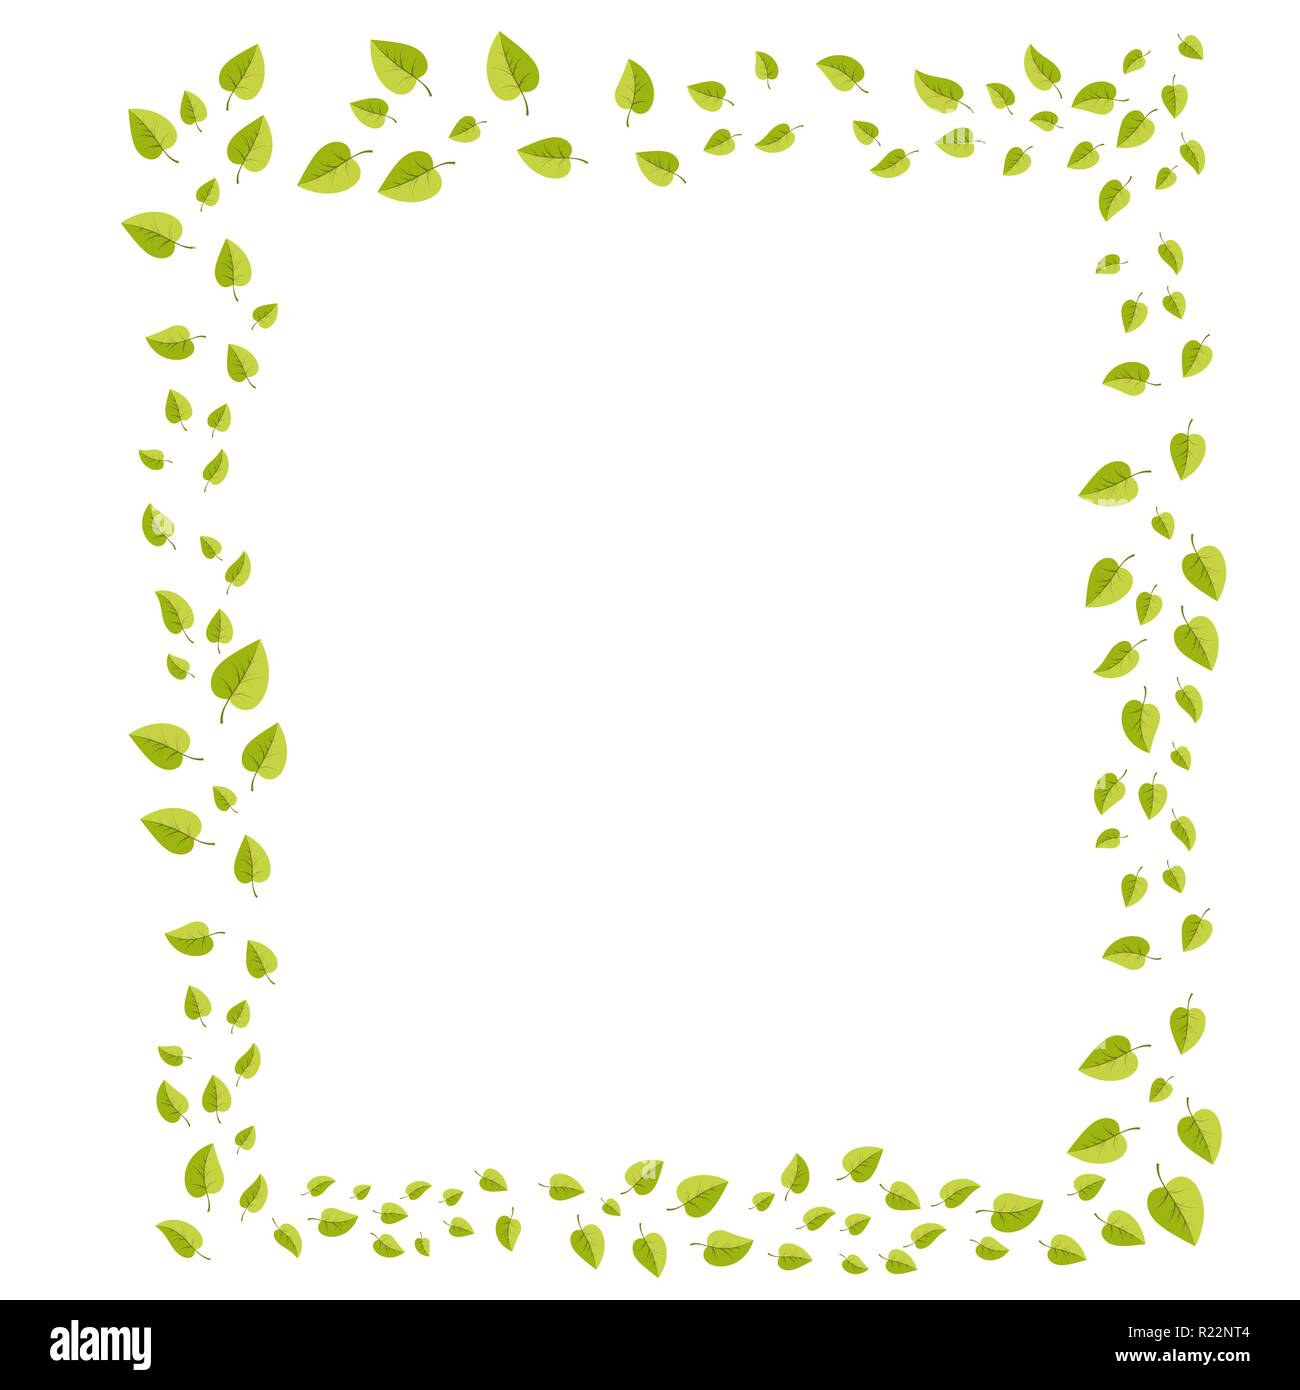 Leafs Frame For Decoration For Web And Print Illsutration Vecotor Cartoon Spring Green Leaves Stock Vector Image Art Alamy